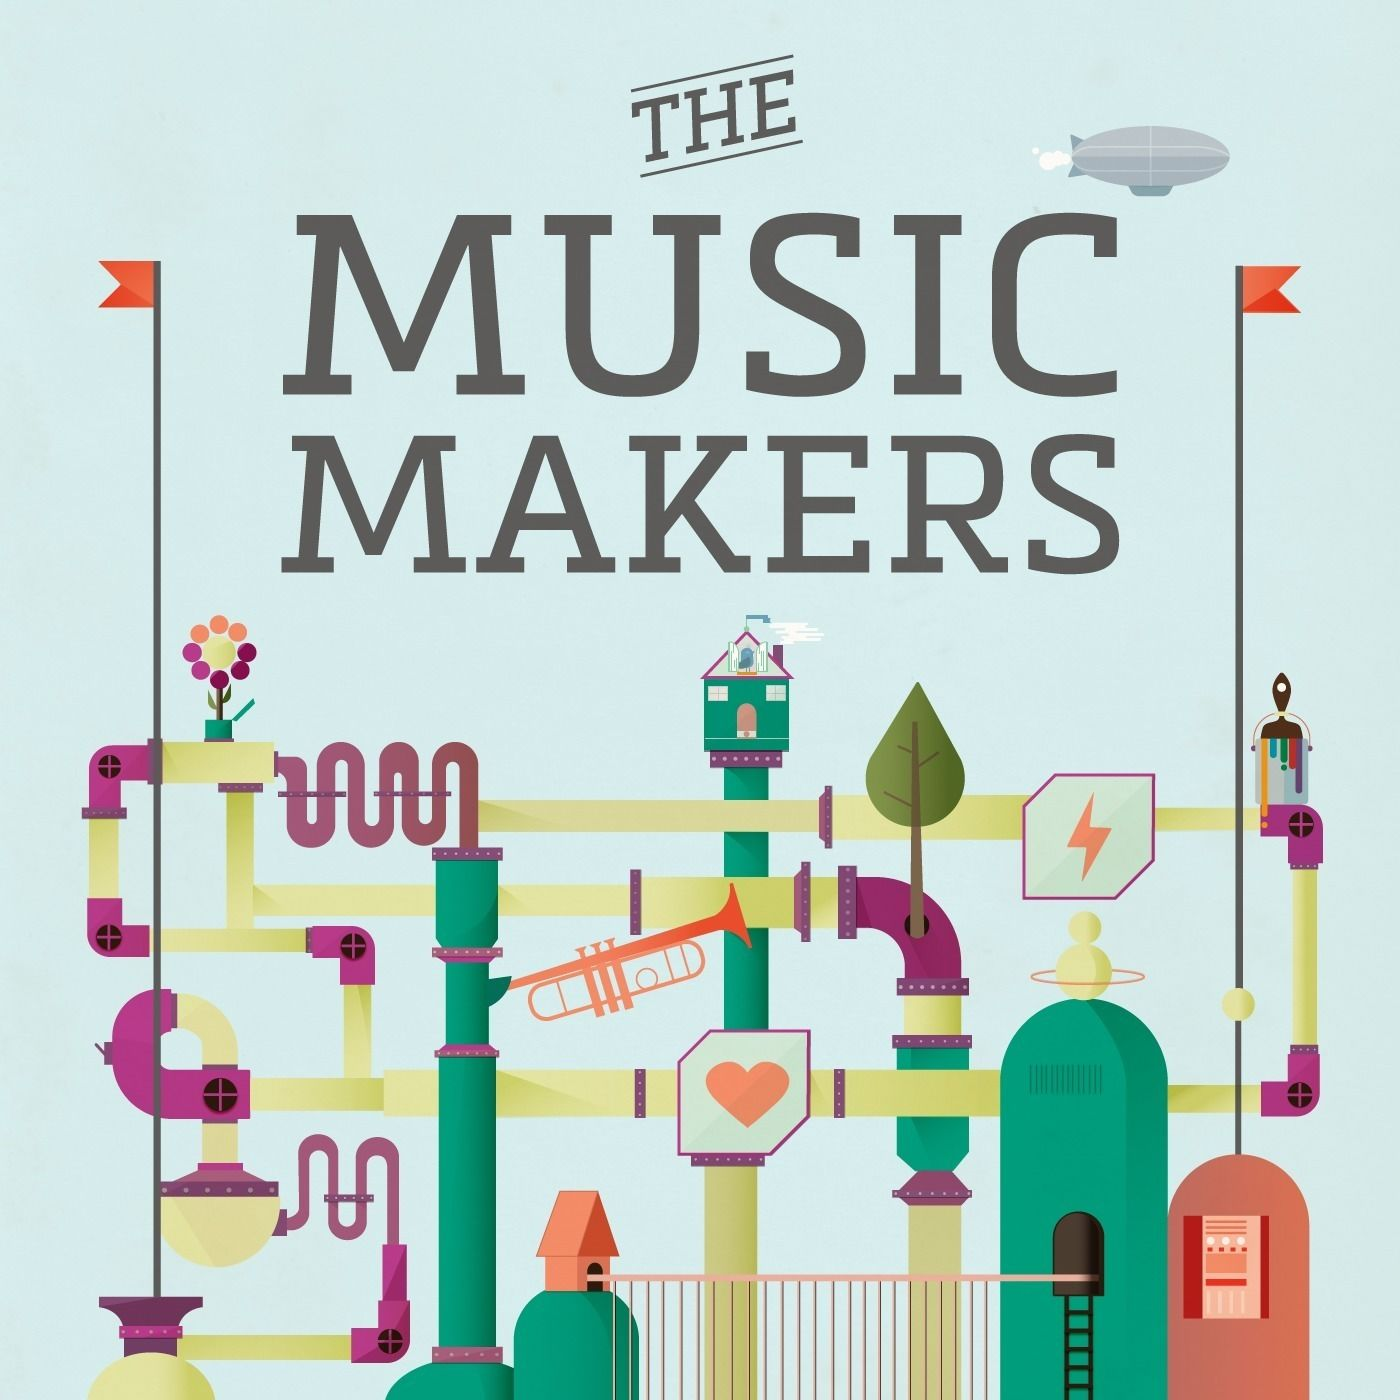 The Music Makers - Articles That Influenced My Life